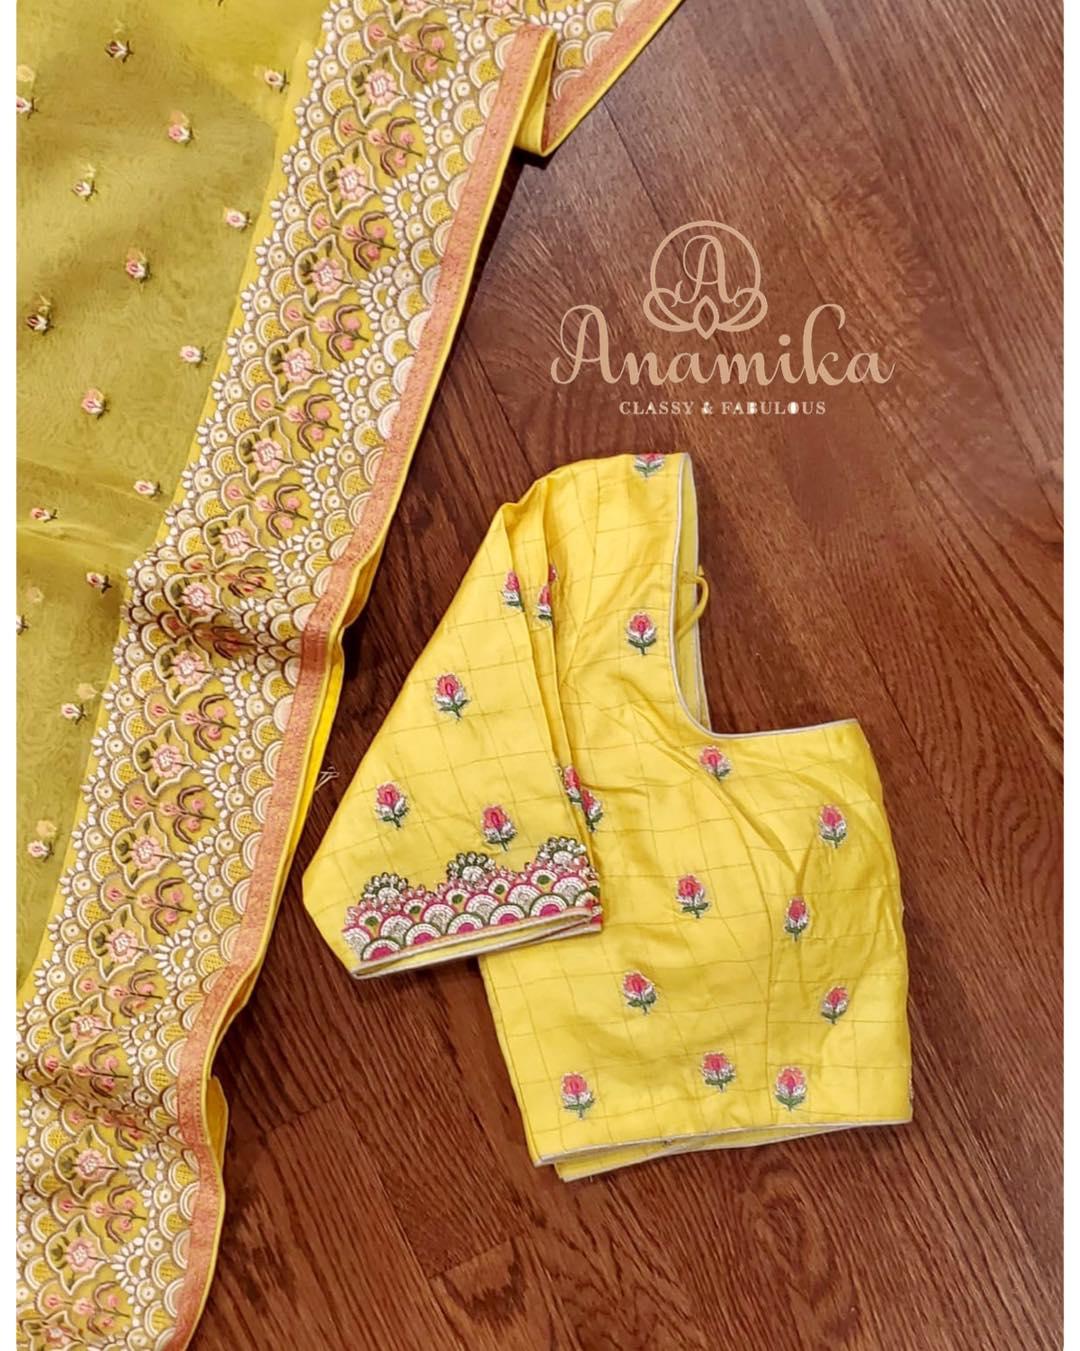 Somethings are truly striking - like this beautiful  Handloom Kora silk saree in yellow !  Attention to detail  gorgeous embroidered border and pallu  and the cute little butties all over the saree  the closely knit tassels on the pallu edge - *all come together to make this a masterpiece* The mono color blouse with intricately designed handwork is so apt to the design on the saree and makes this a perfect choice for your special day !  We r just in love  with this !  DM 360-545-3636 or 425-598-6797 for inquiries 2021-02-07